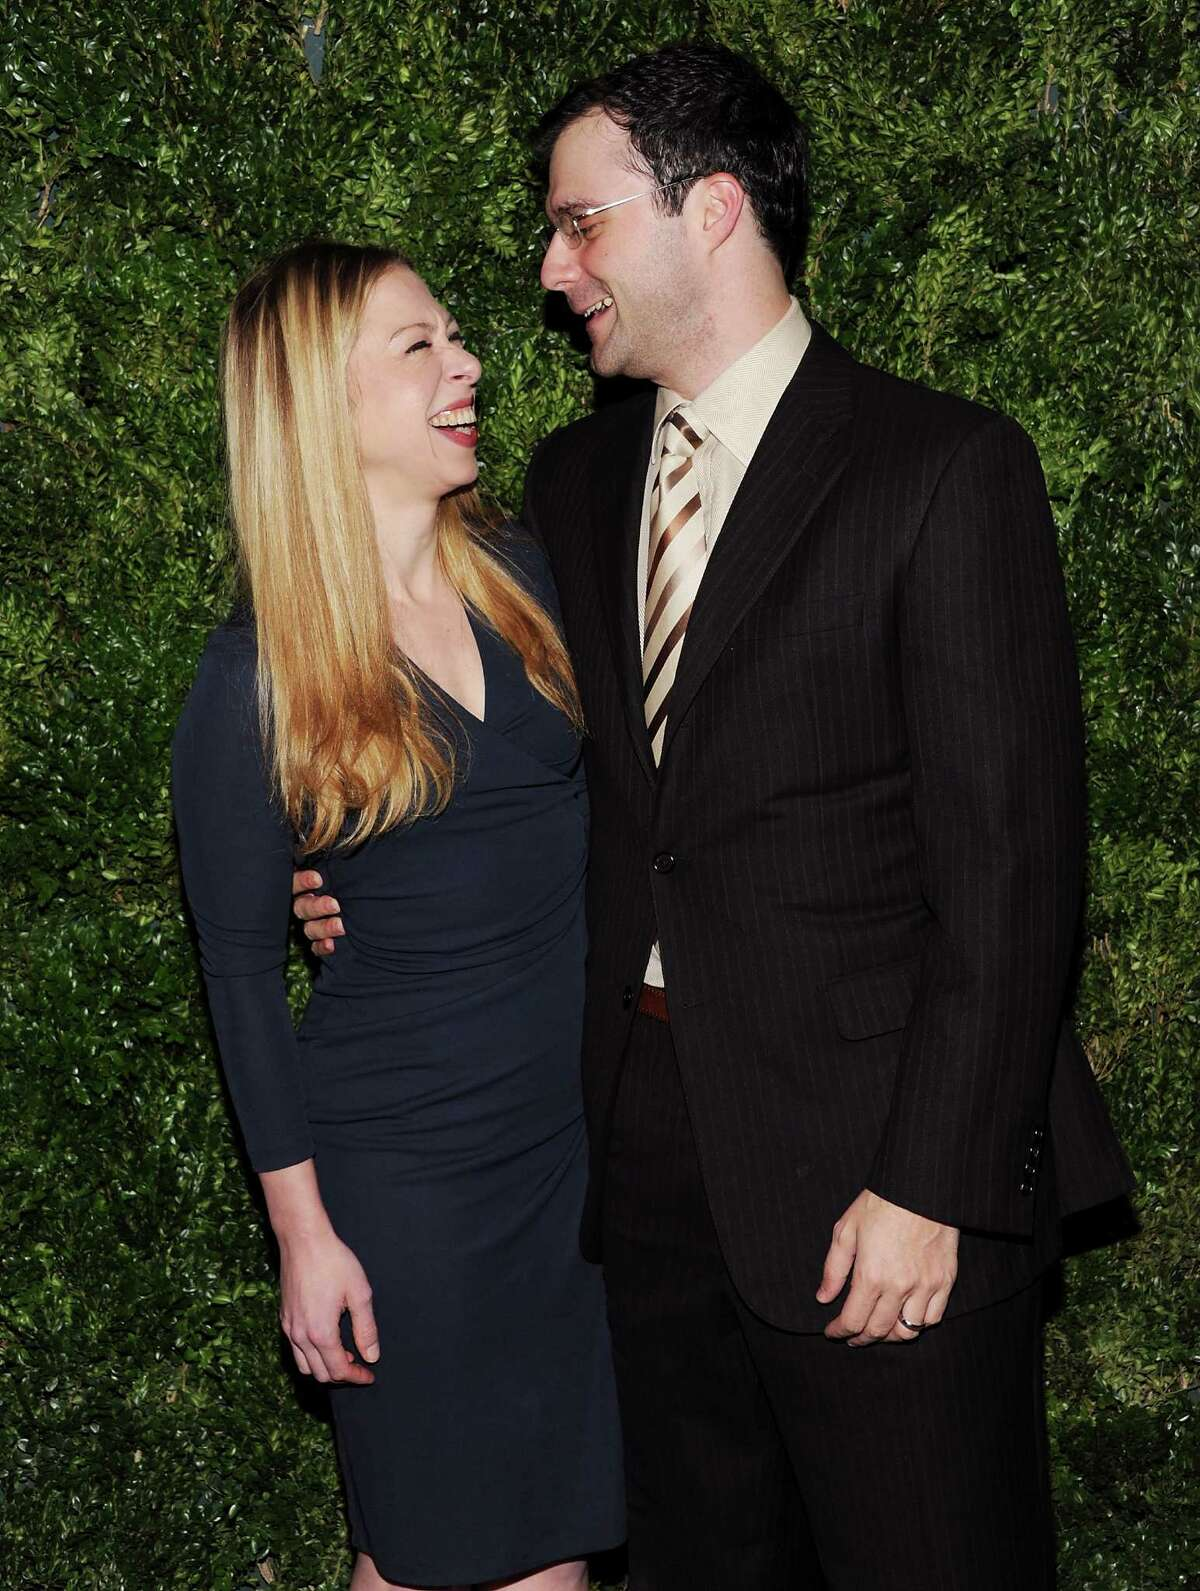 Chelsea Clinton and husband Marc Mezvinsky attend the 2012 CFDA / Vogue Fashion Fund Awards on Tuesday Nov. 13, 2012 in New York.